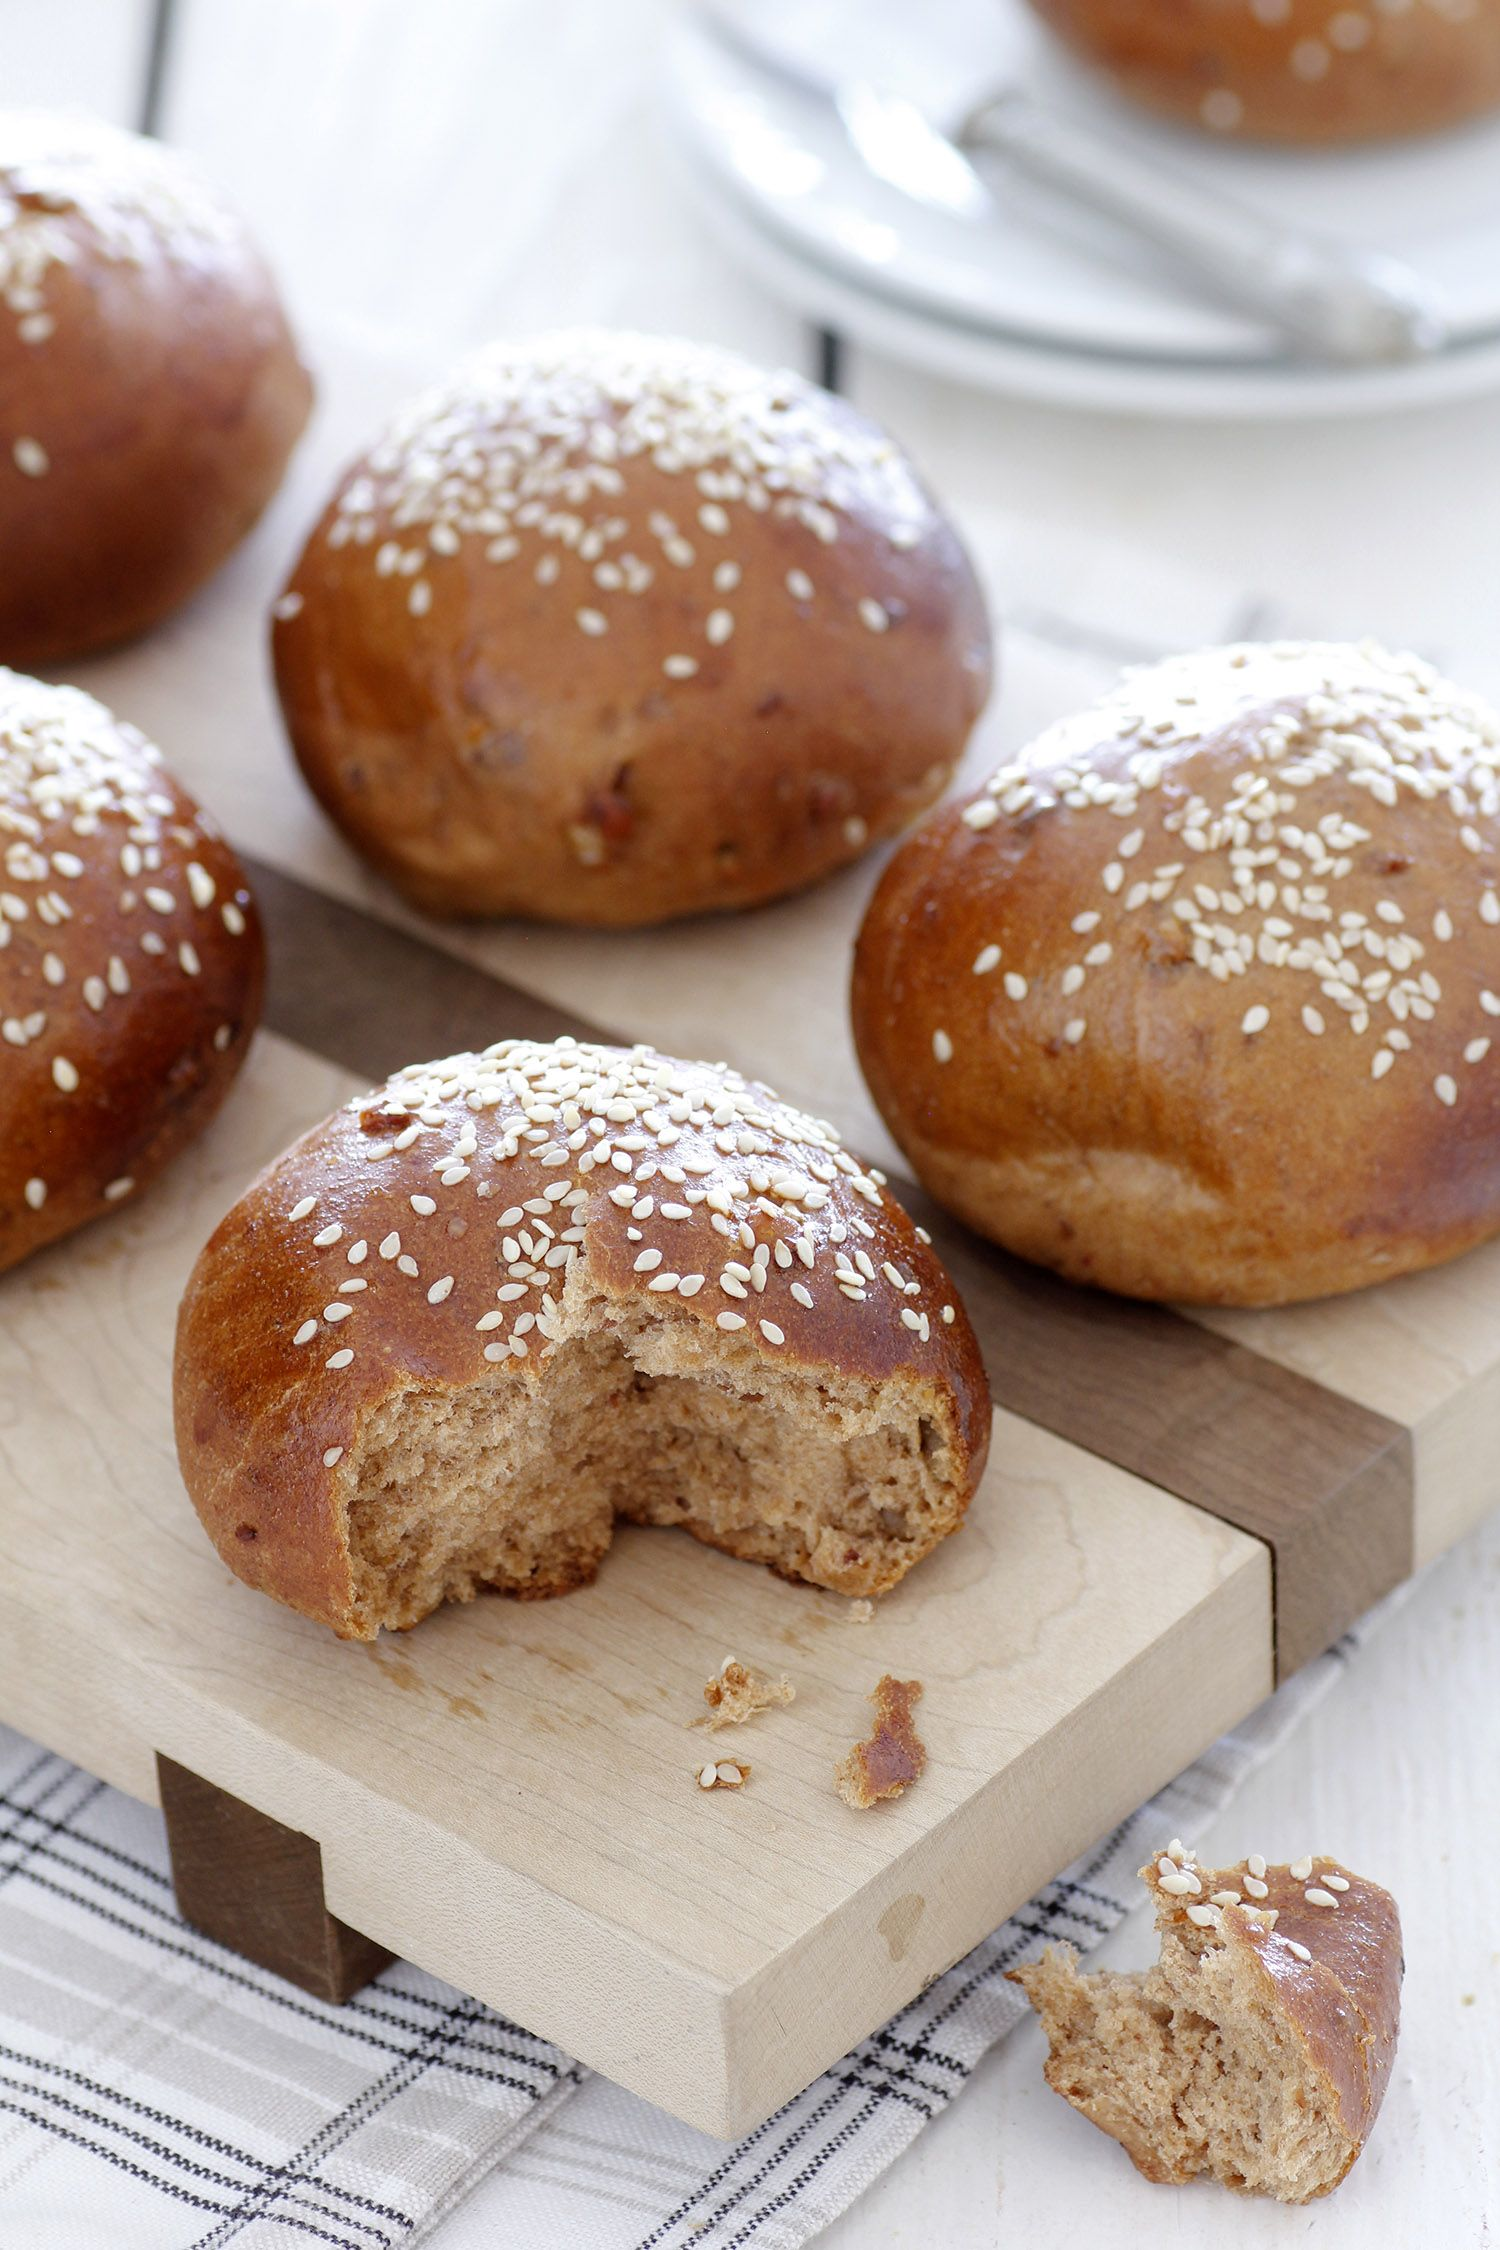 Whole Wheat Bread Rolls with Dates and Nuts